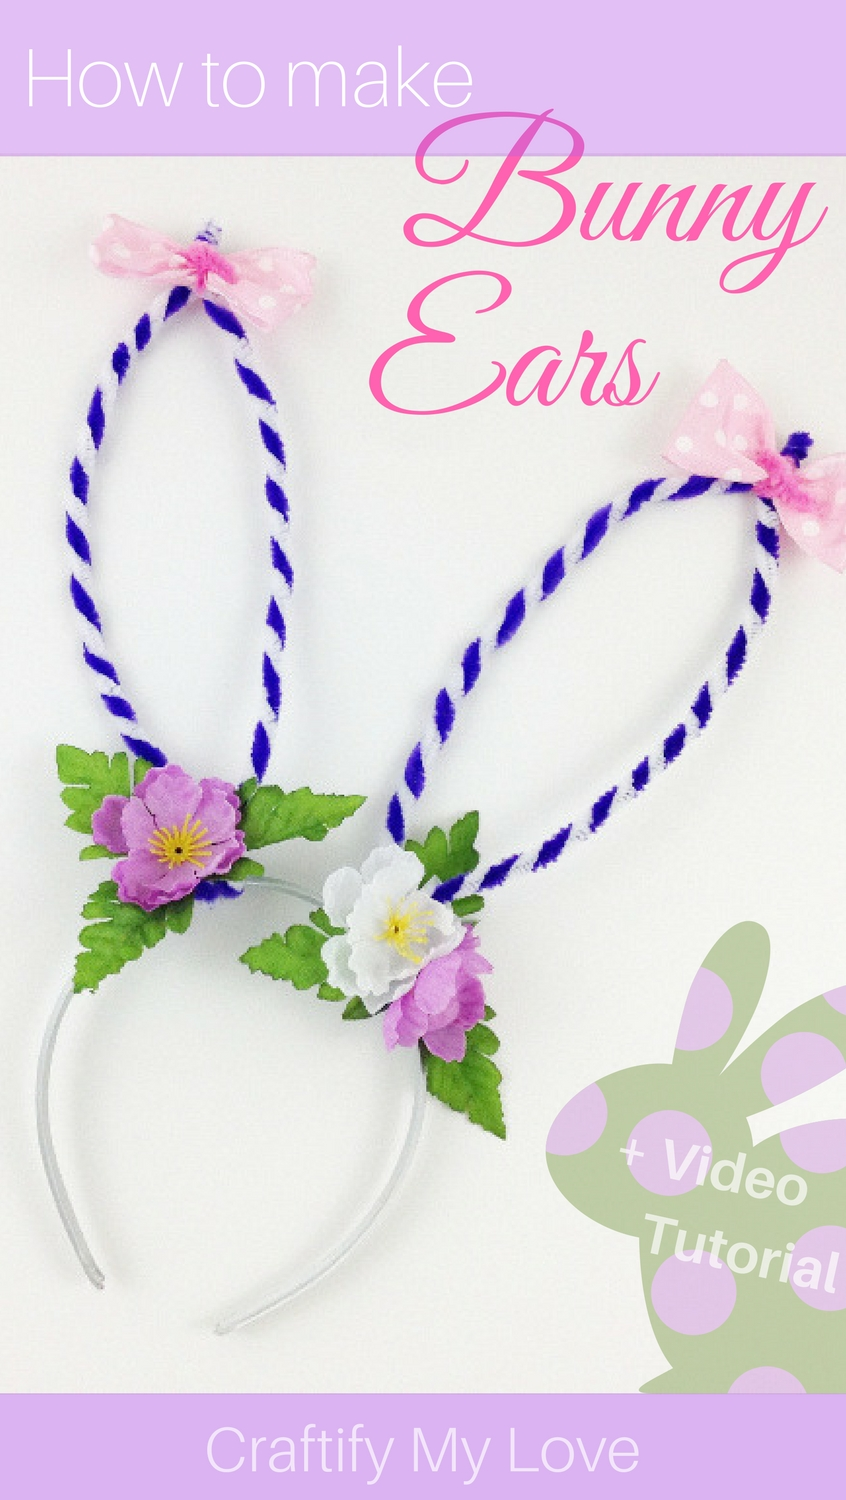 Hot to make a wearable bunny ears headband for your bunny costume. Click for an easy step-by-step tutorial including video directions | #bunnyears #costumeidea #halloween #spring #Easter #dressup #pipecleaner #kidscrafts #dollarstoreDIY